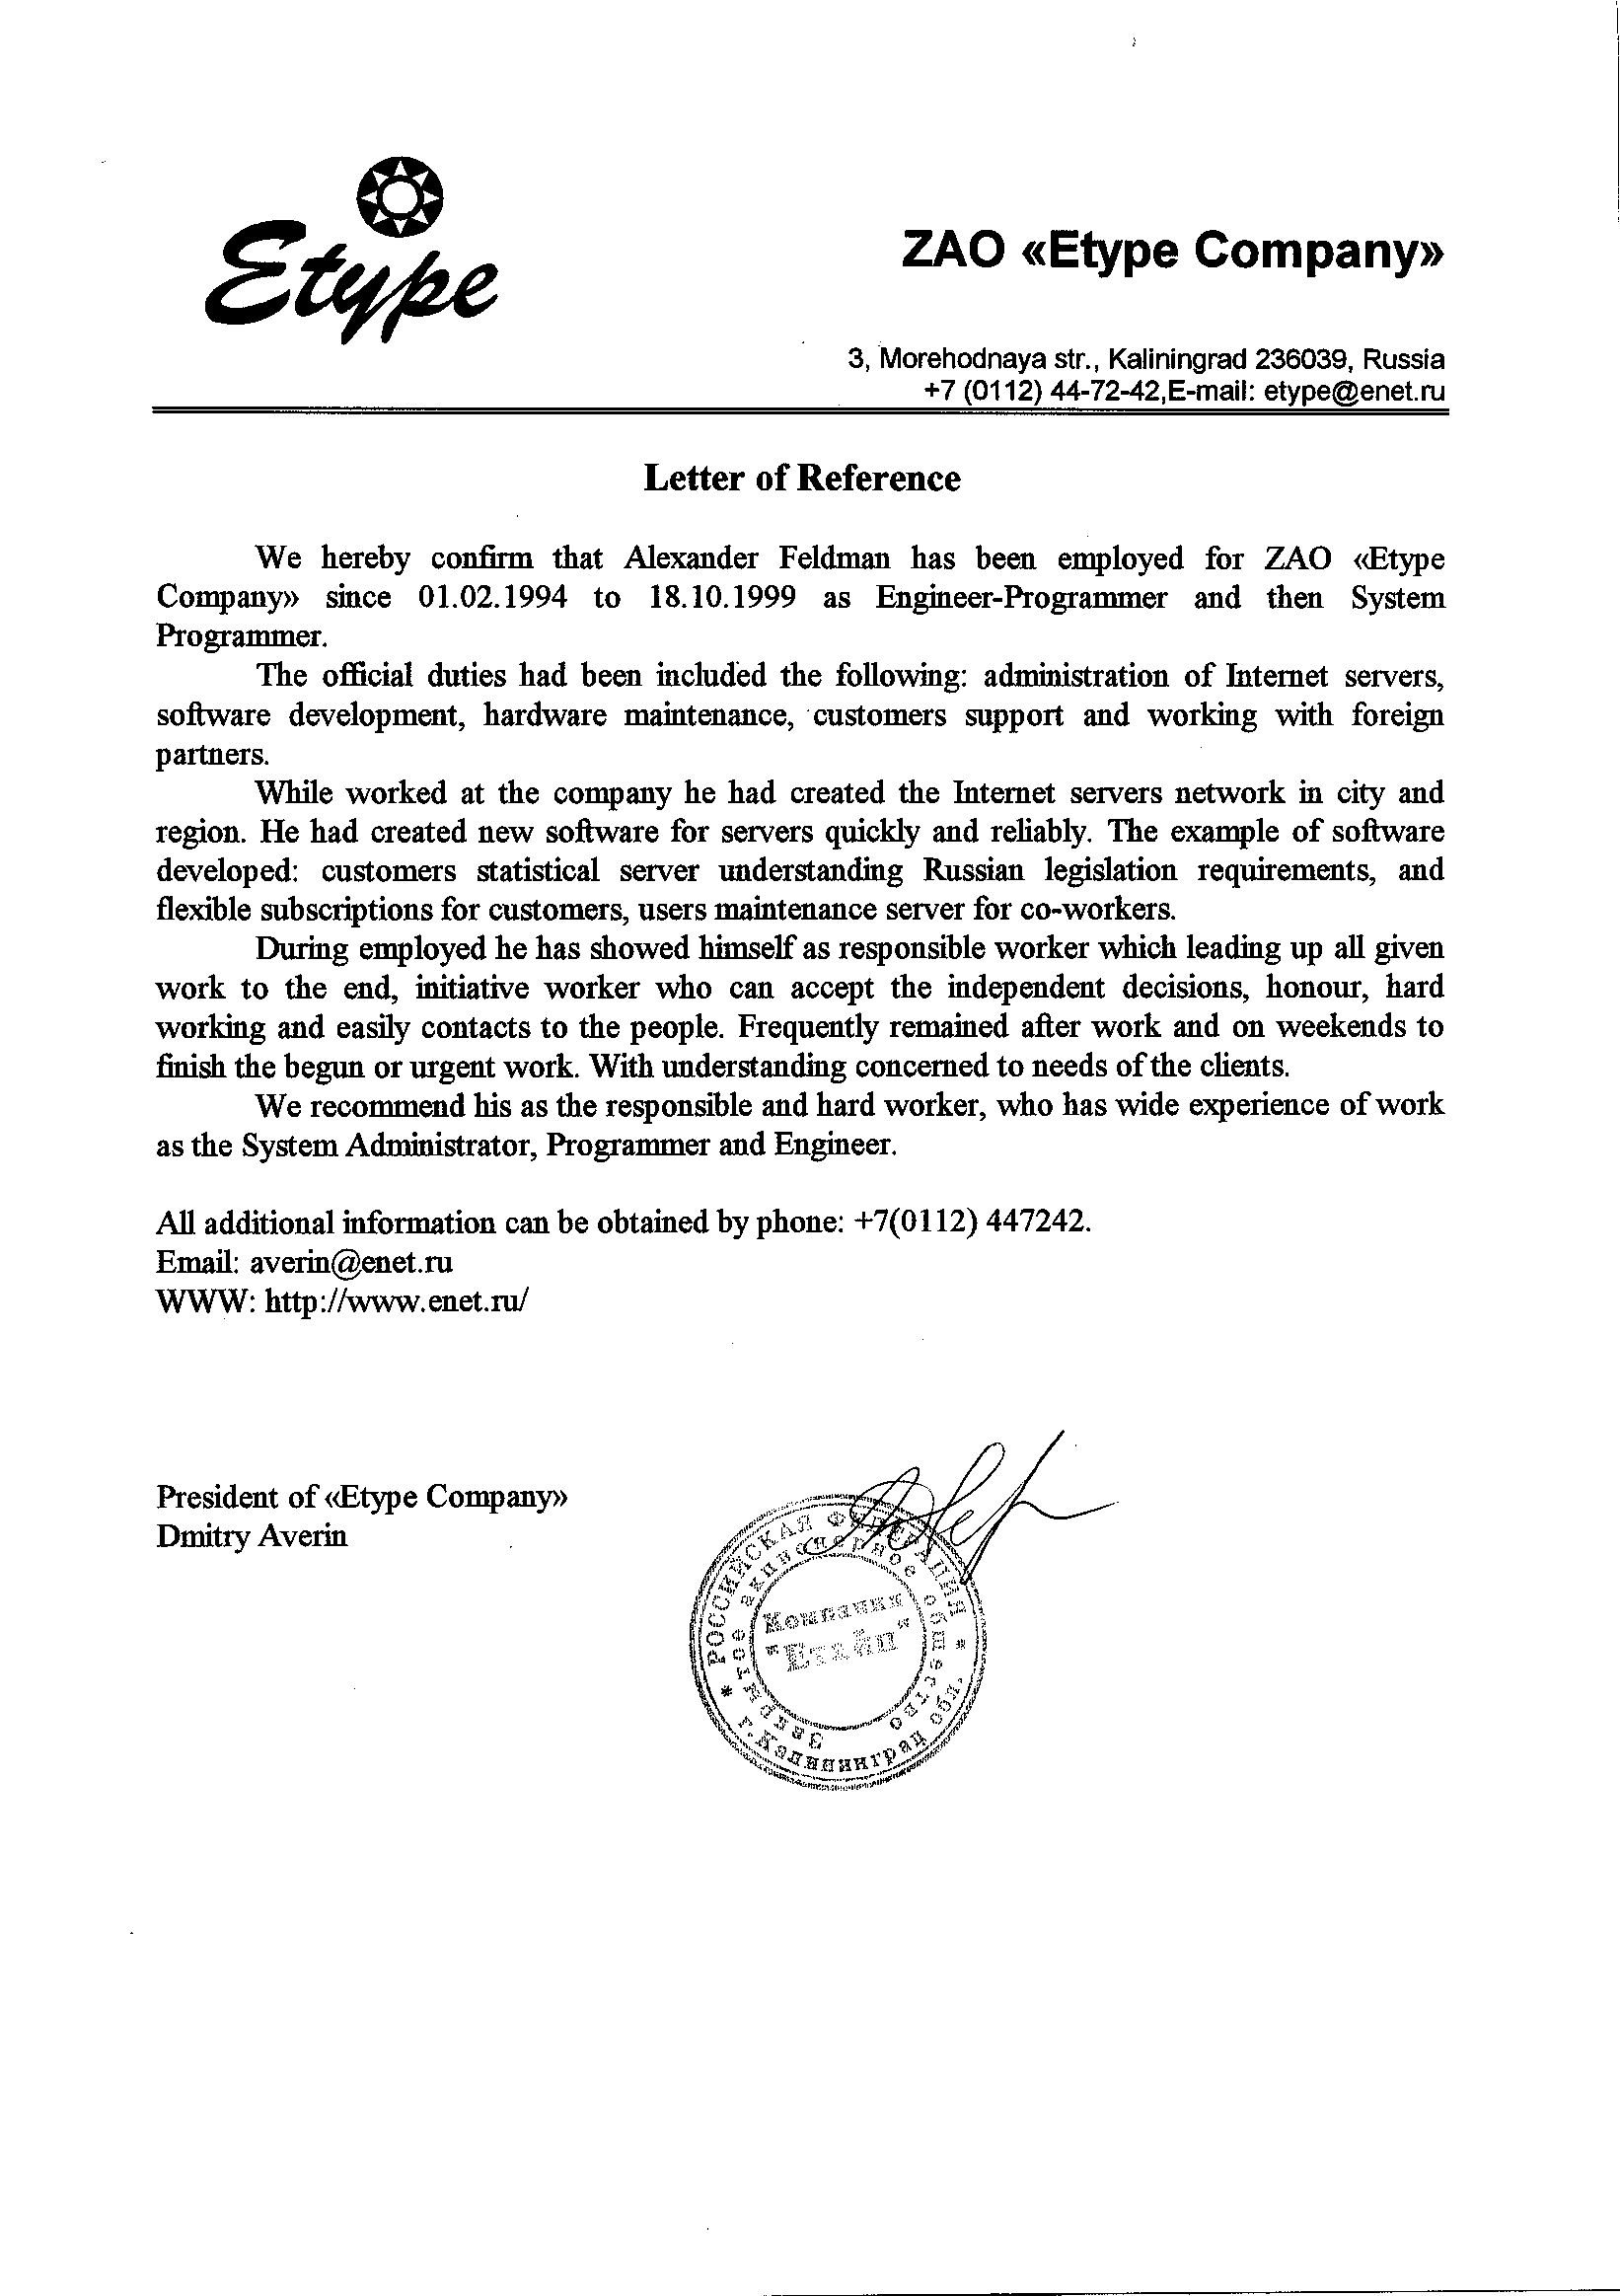 Recommendation Letter For Ms In Computer Science From Employer